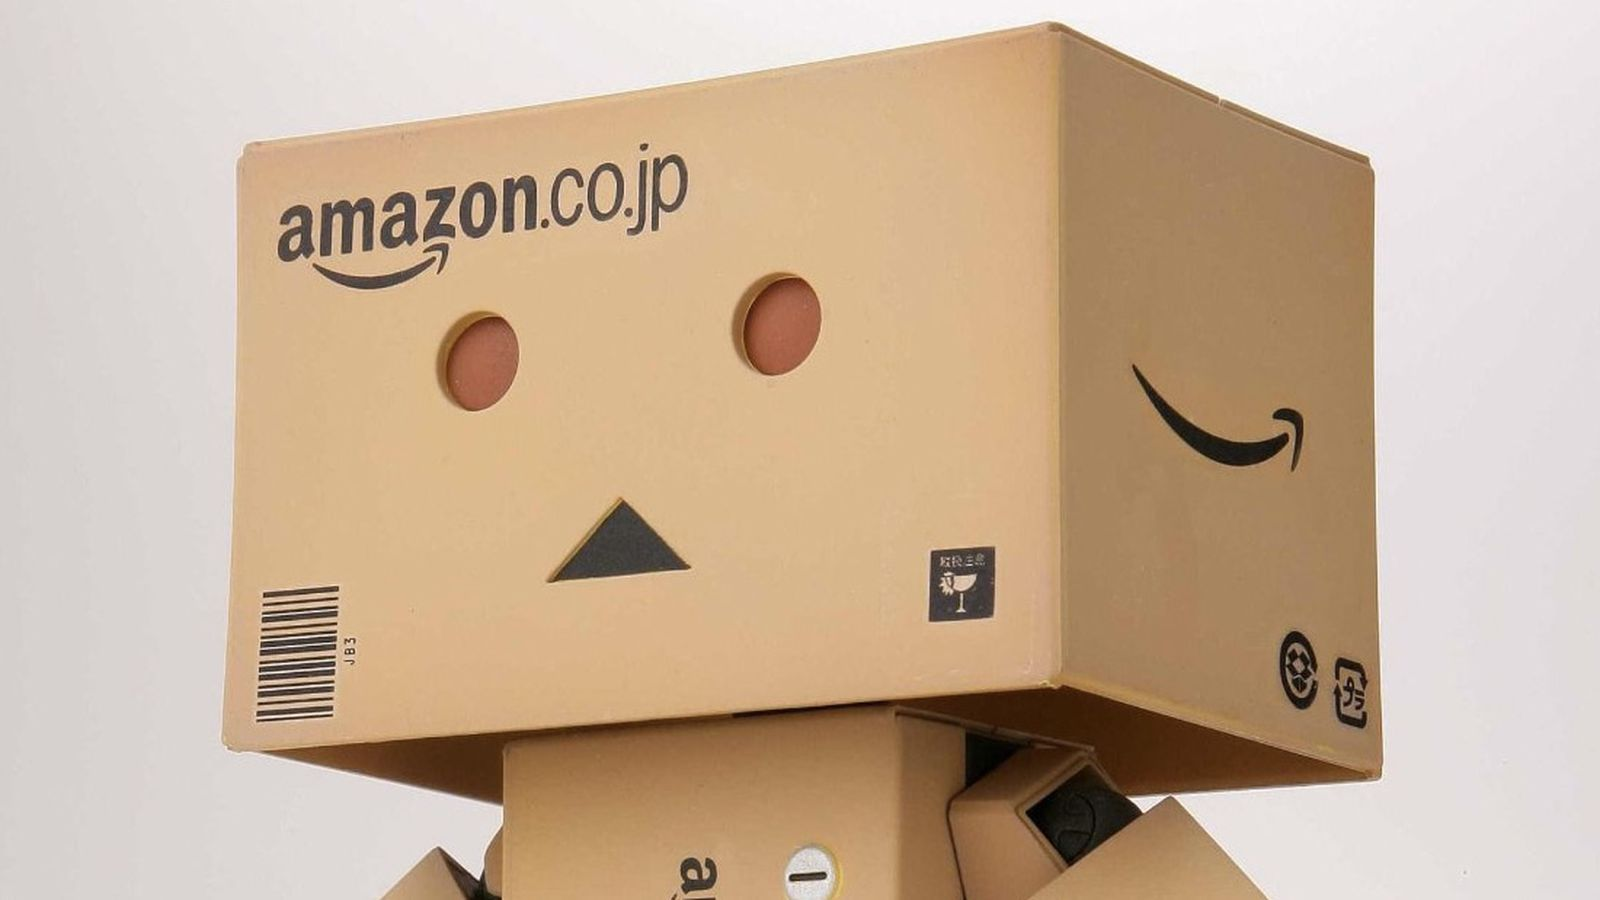 Amazon co jp bestellen